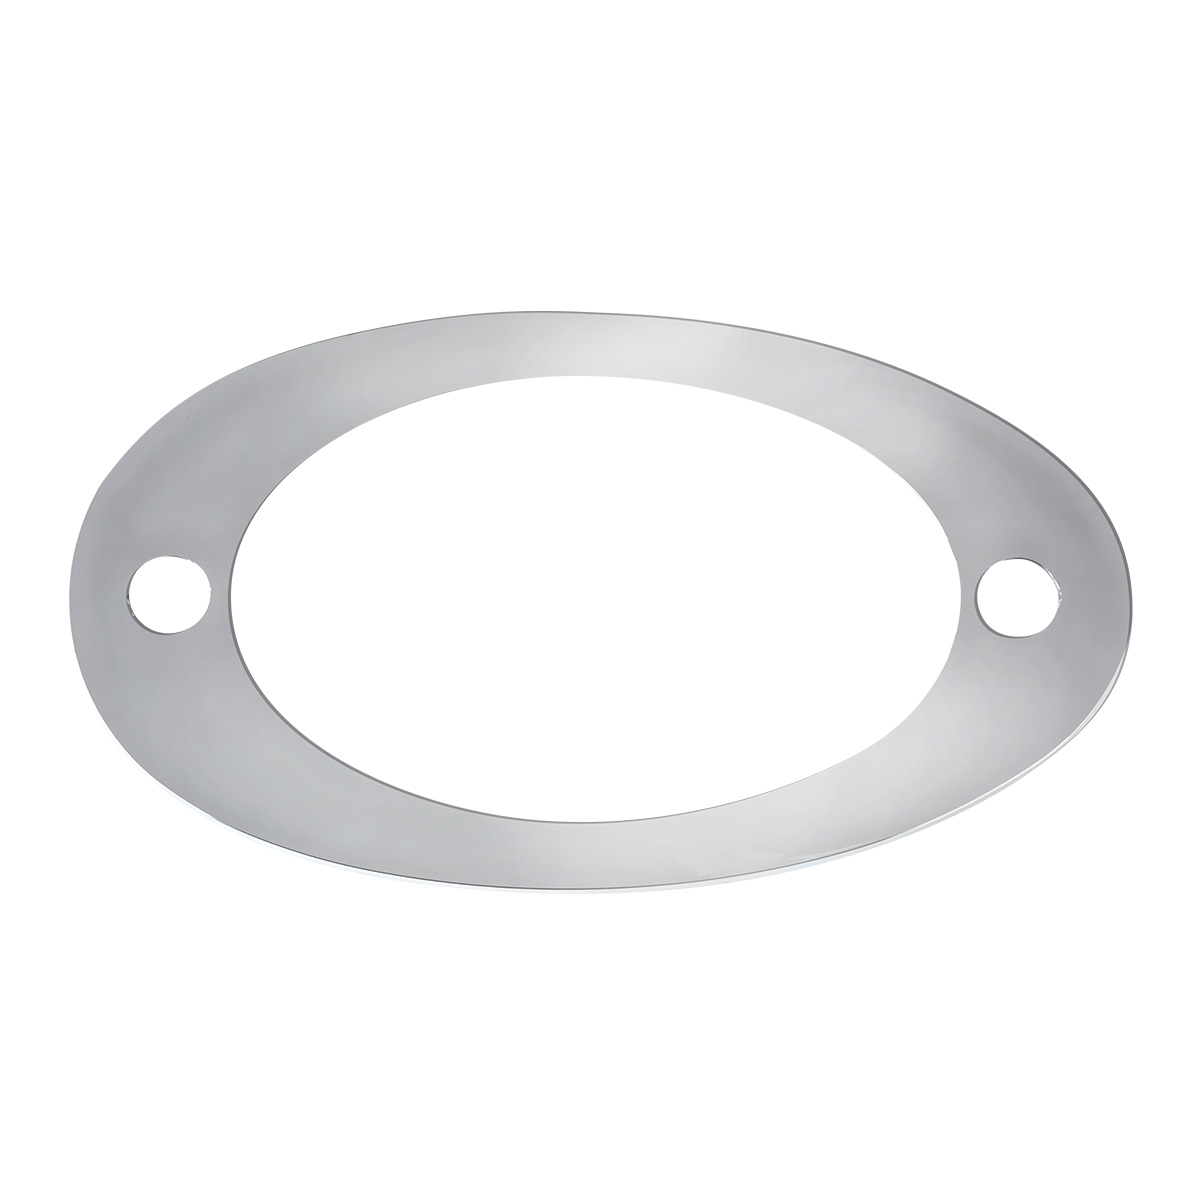 Exterior Front Side Turn Light Cover